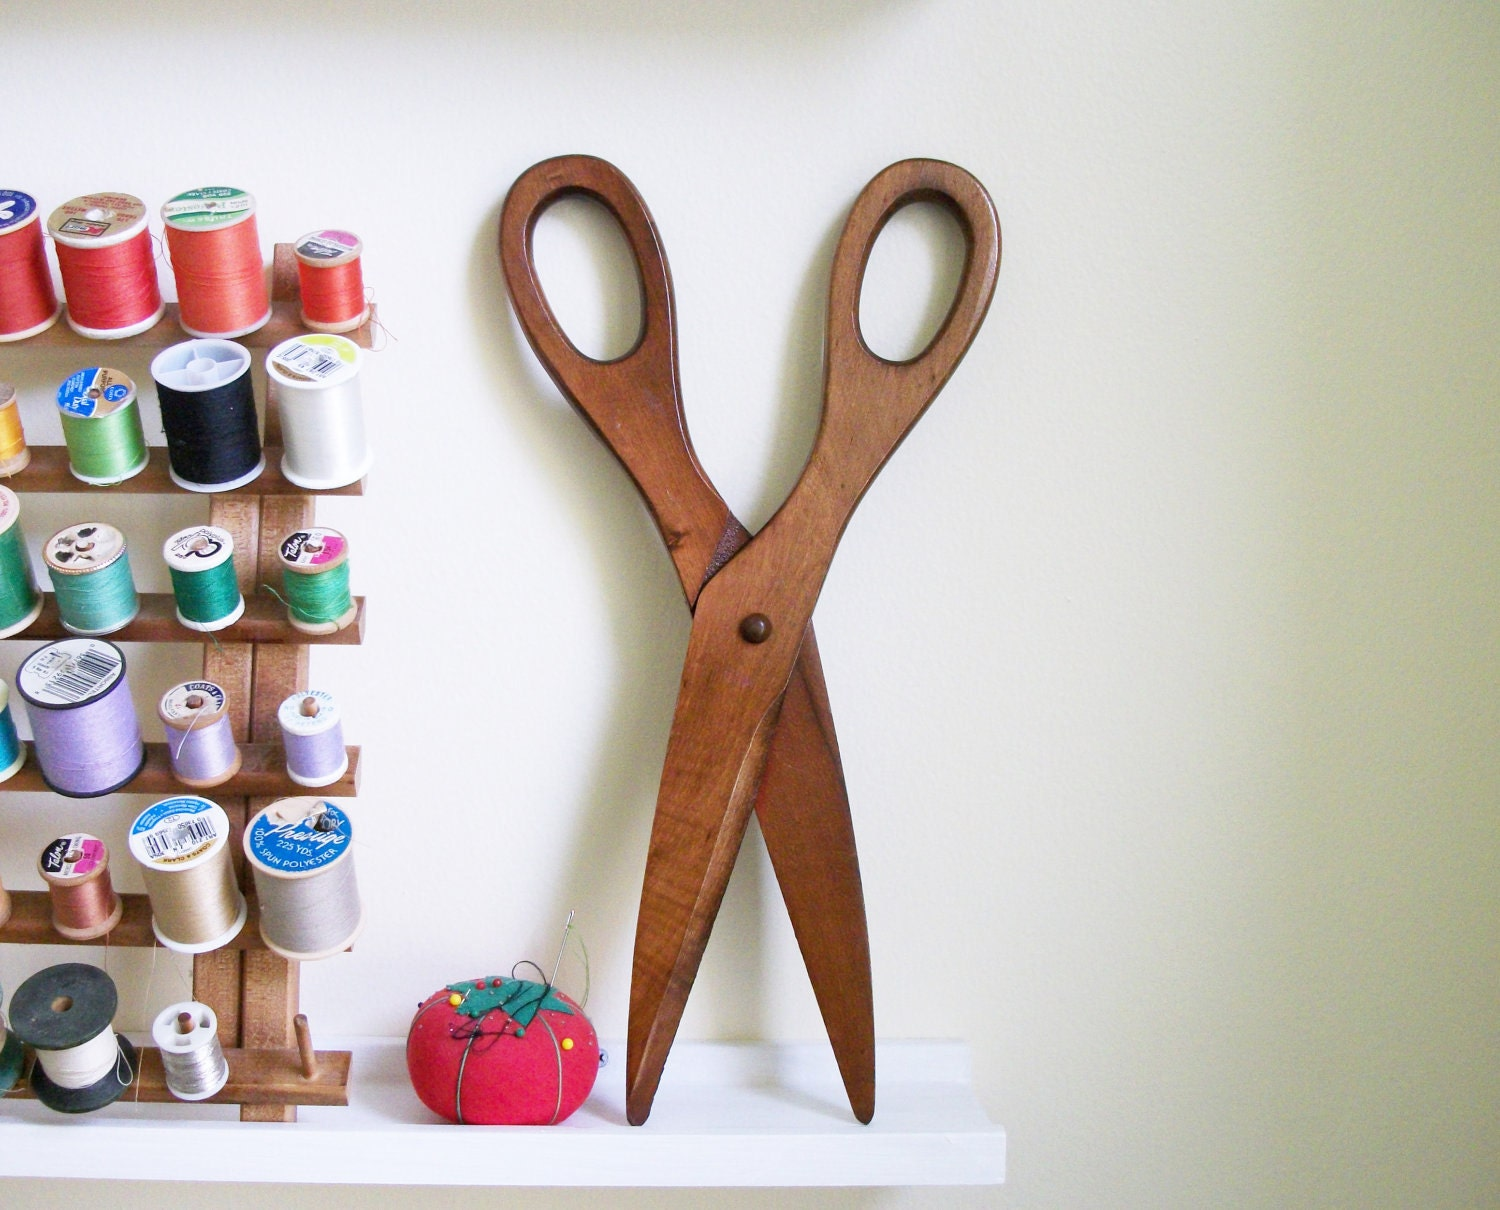 Large Vintage Wall Decor : Large vintage wooden scissors wall decor